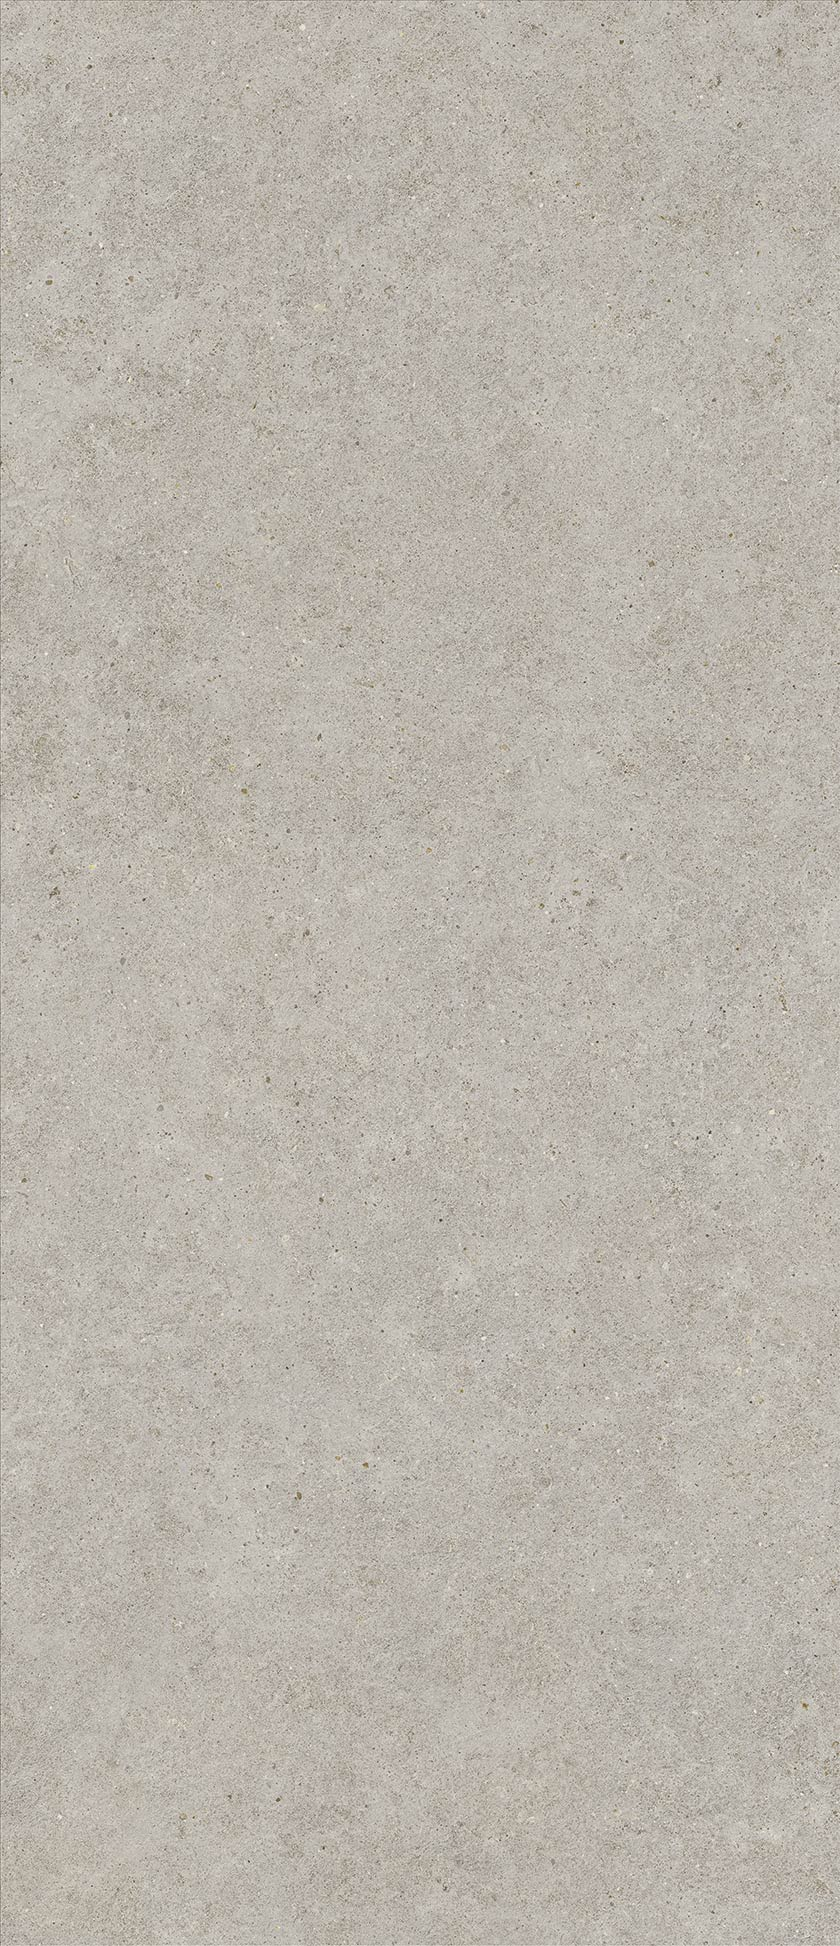 large-size-porcelain-tiles-boost-stone-pearl